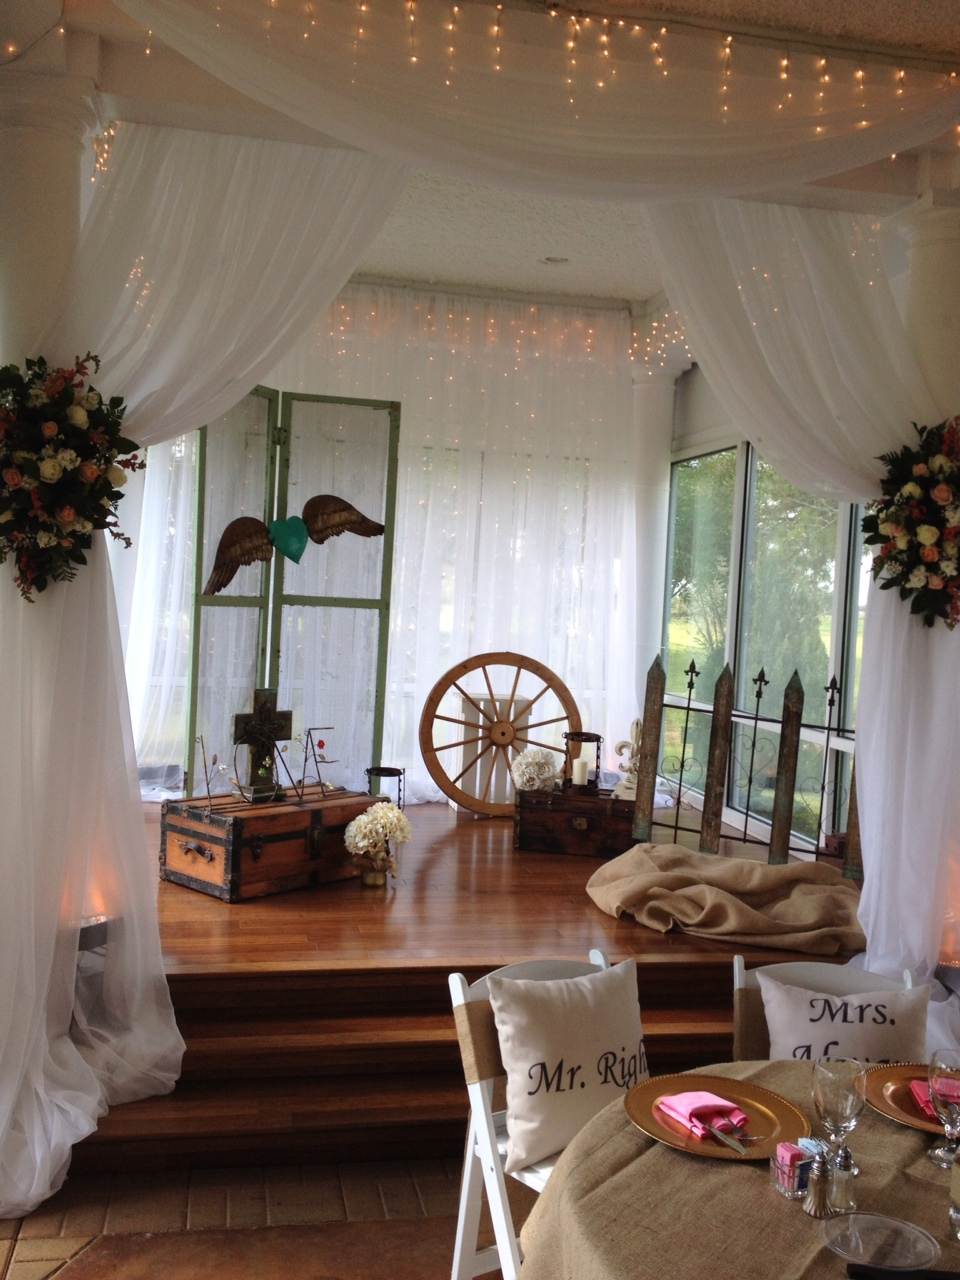 Wedding reception photos - receptions your style at House Plantation